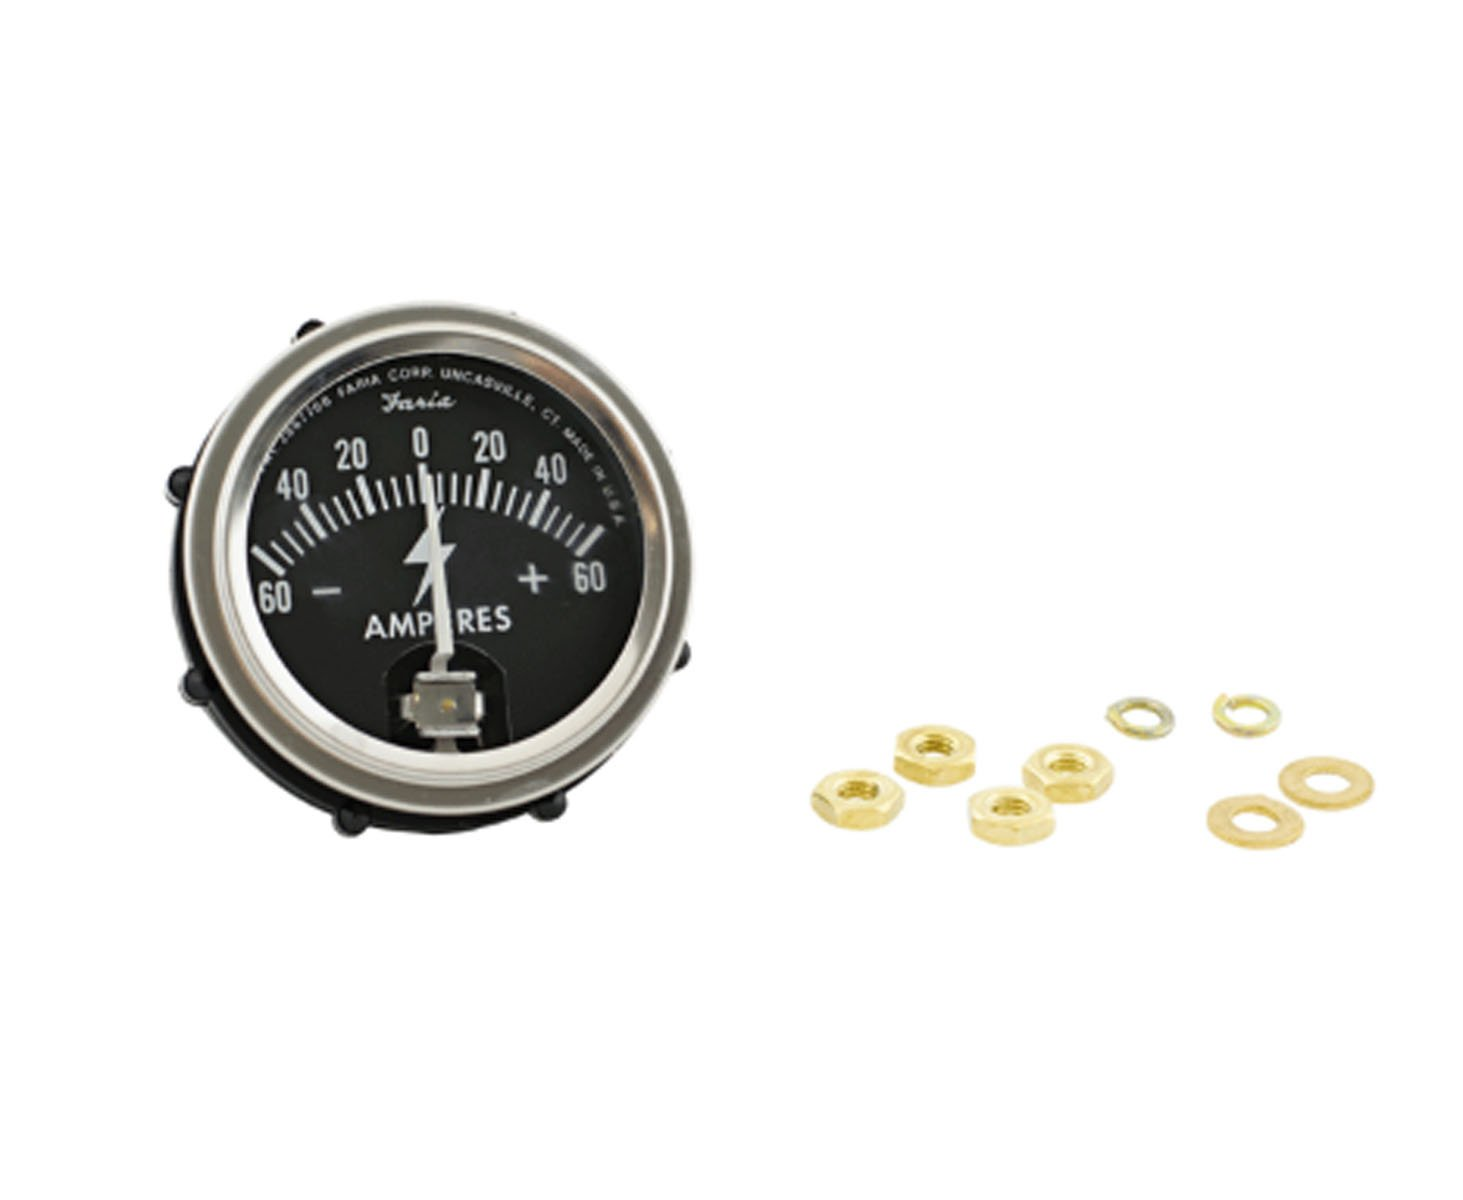 RTP Tractor Ammeter 60-60 Style with Chrome Ring by RTP